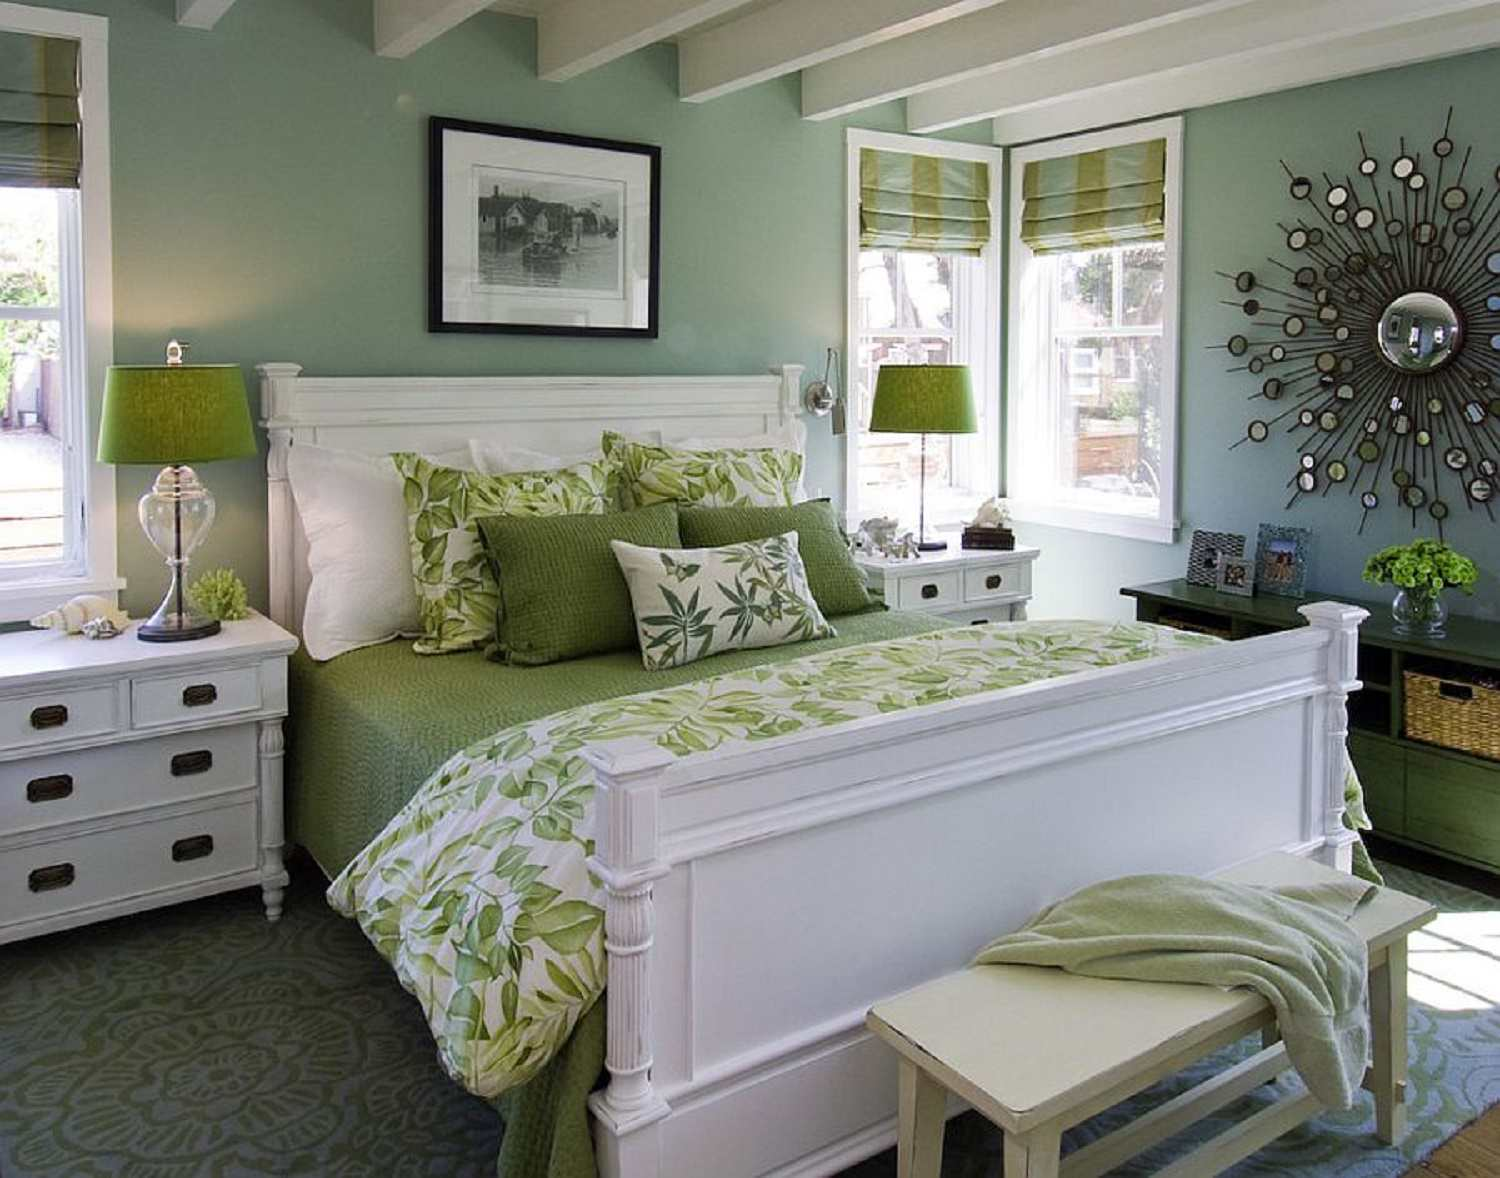 room ideas master bedroom Ideas For Decorating a Small Master Bedroom small master 20 586d9d9c5f9b584db3649475